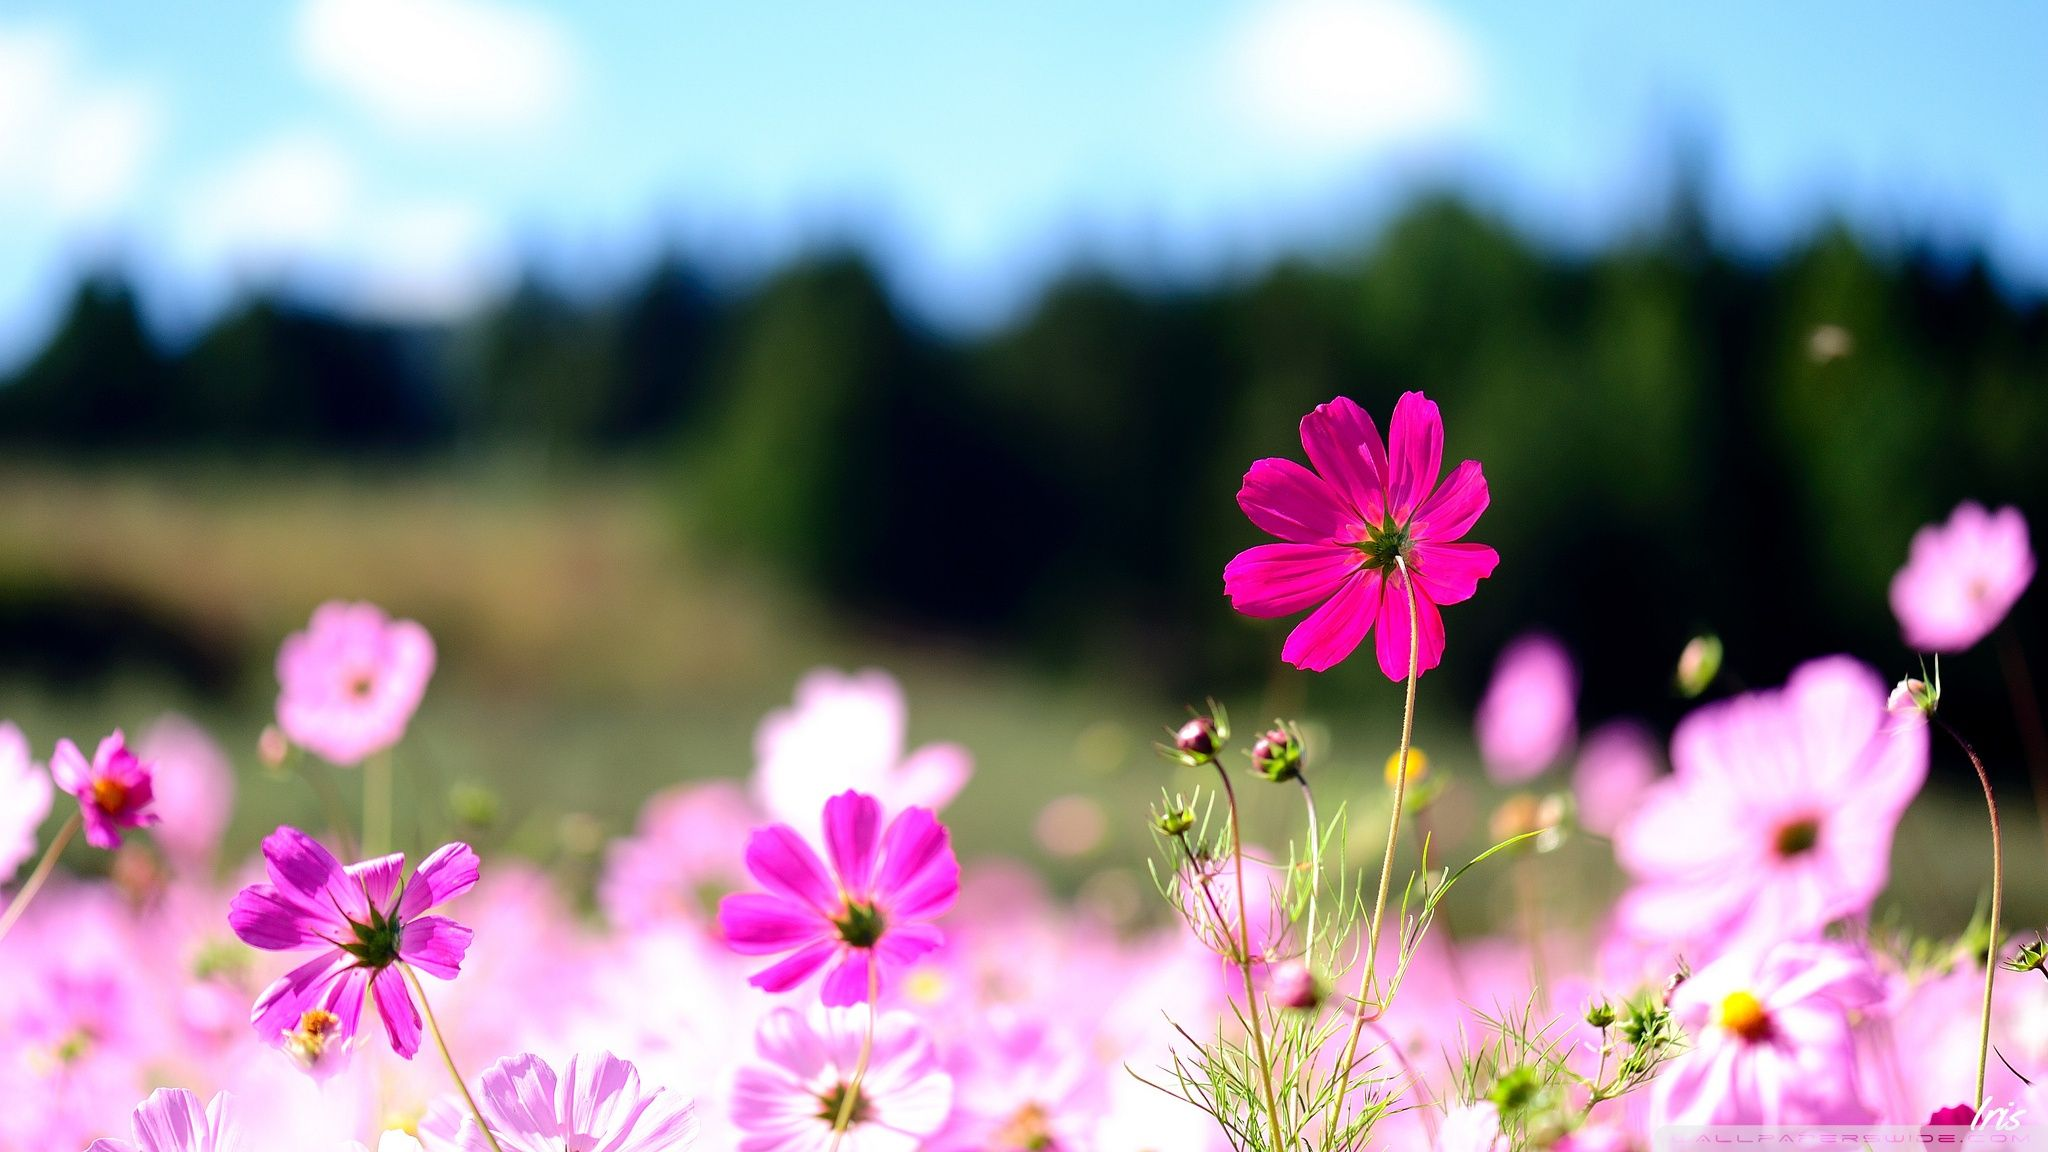 Flowers wallpapers high definition wallpapers high definition - Pink Cosmos Flowers Hd Desktop Wallpaper High Definition